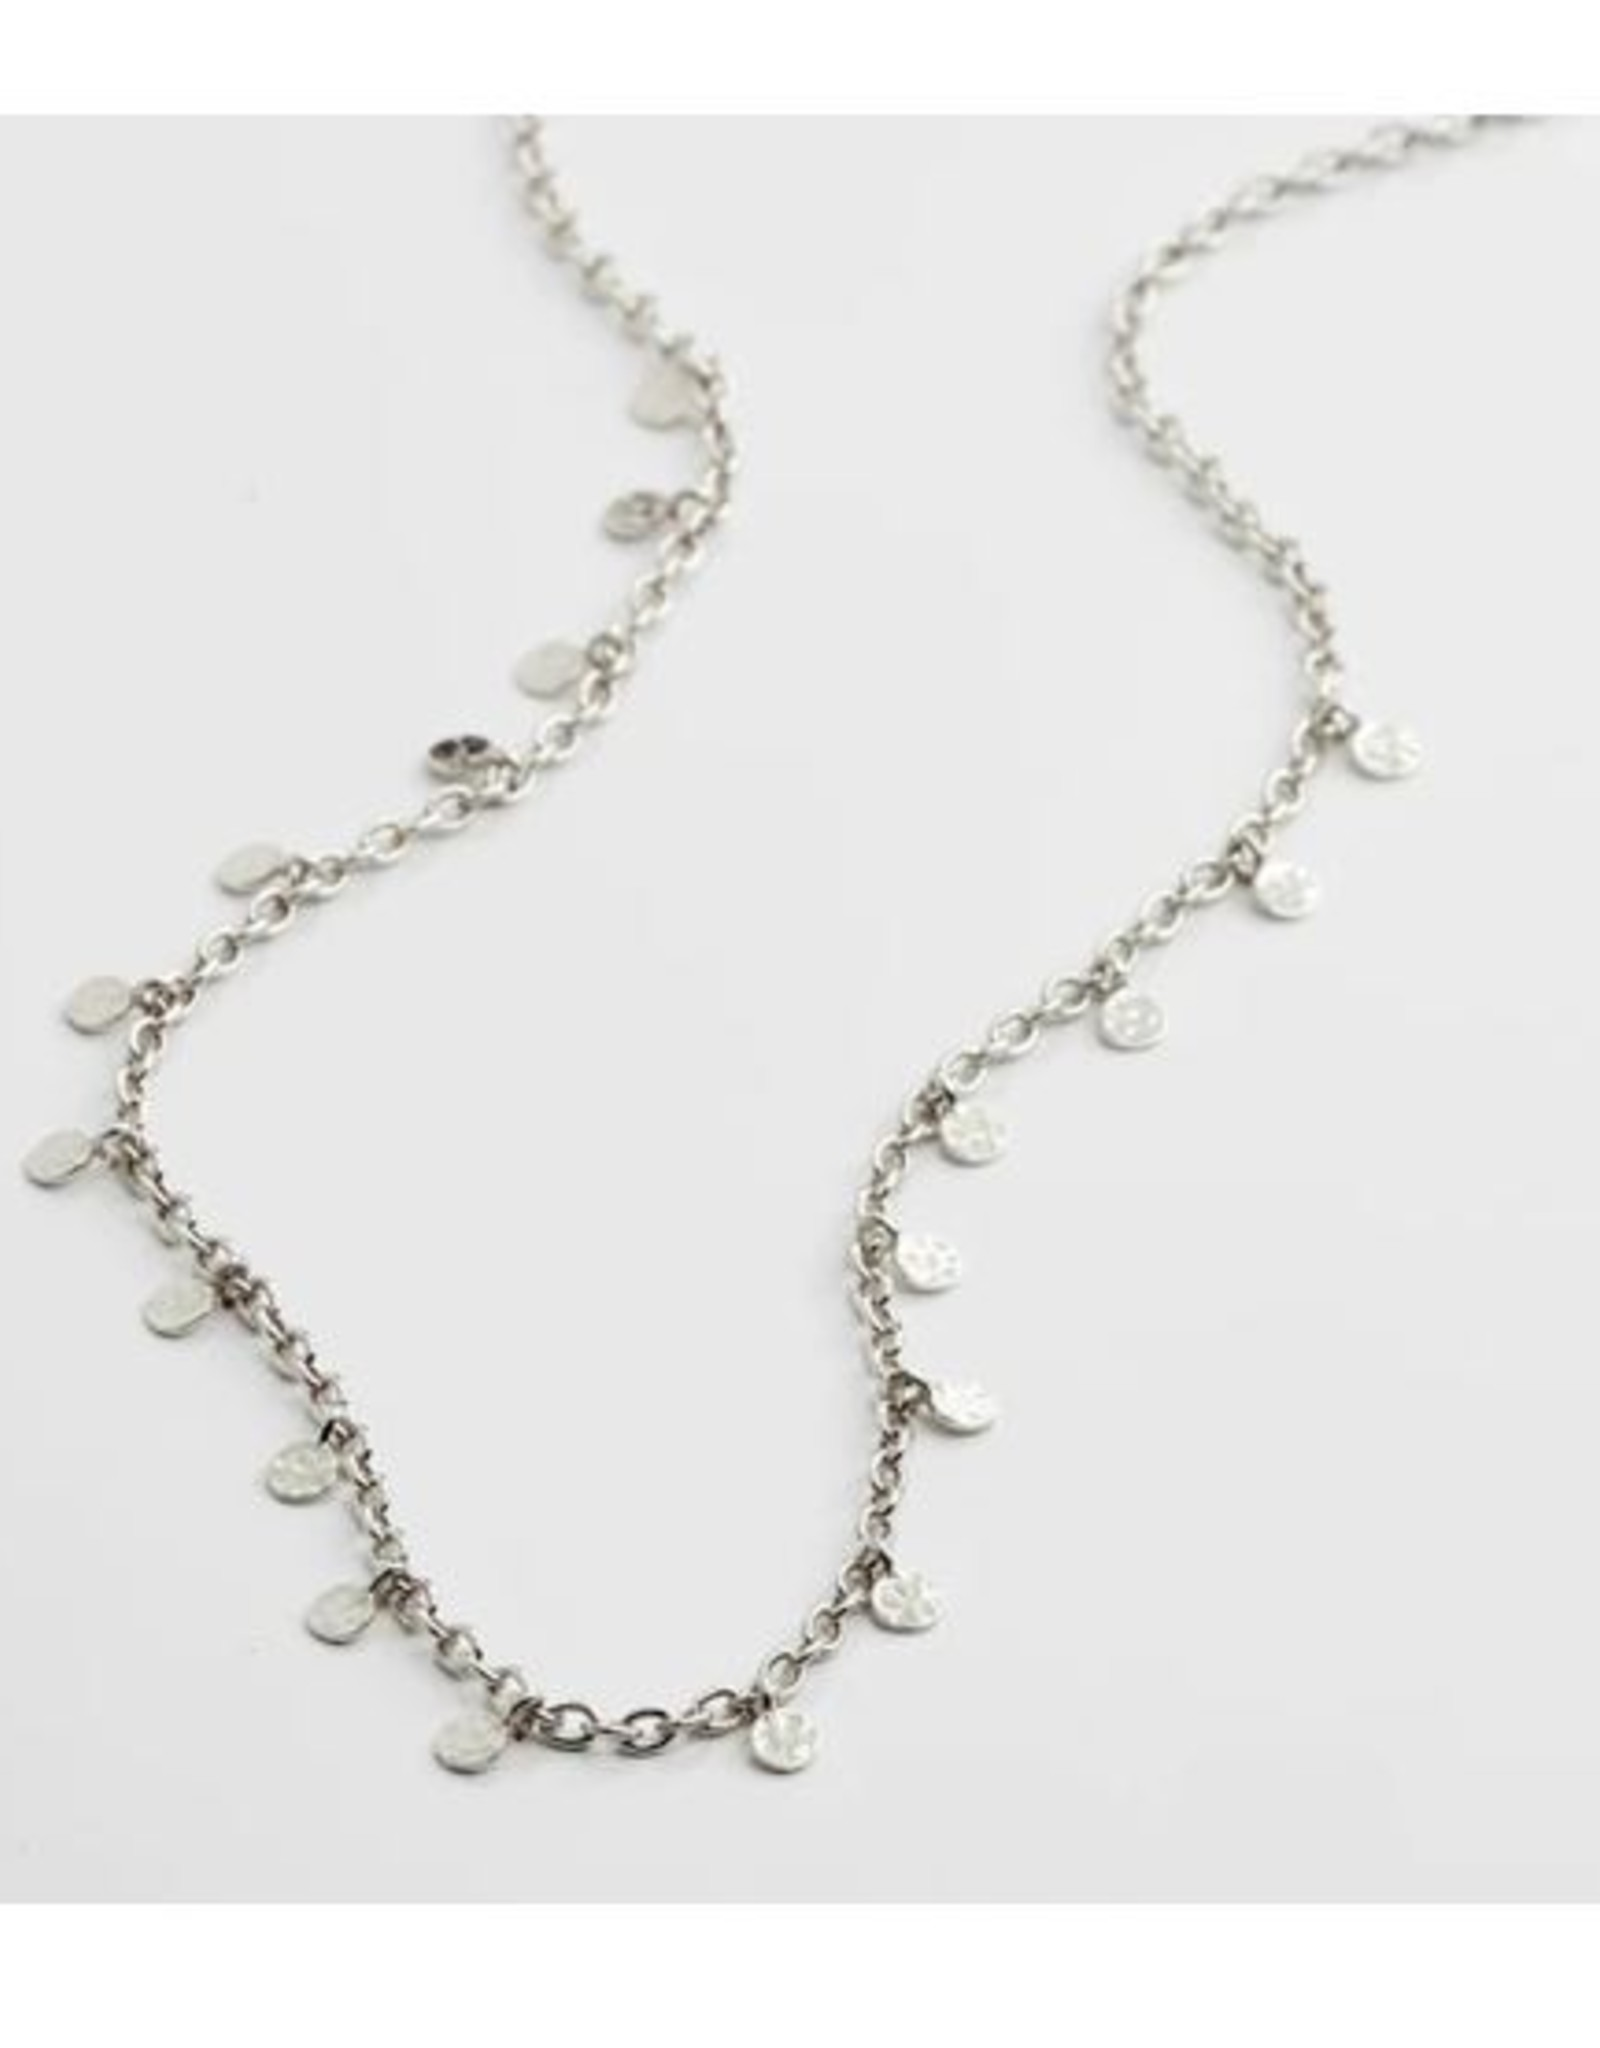 Pilgrim Necklace Panna - Silver Plated